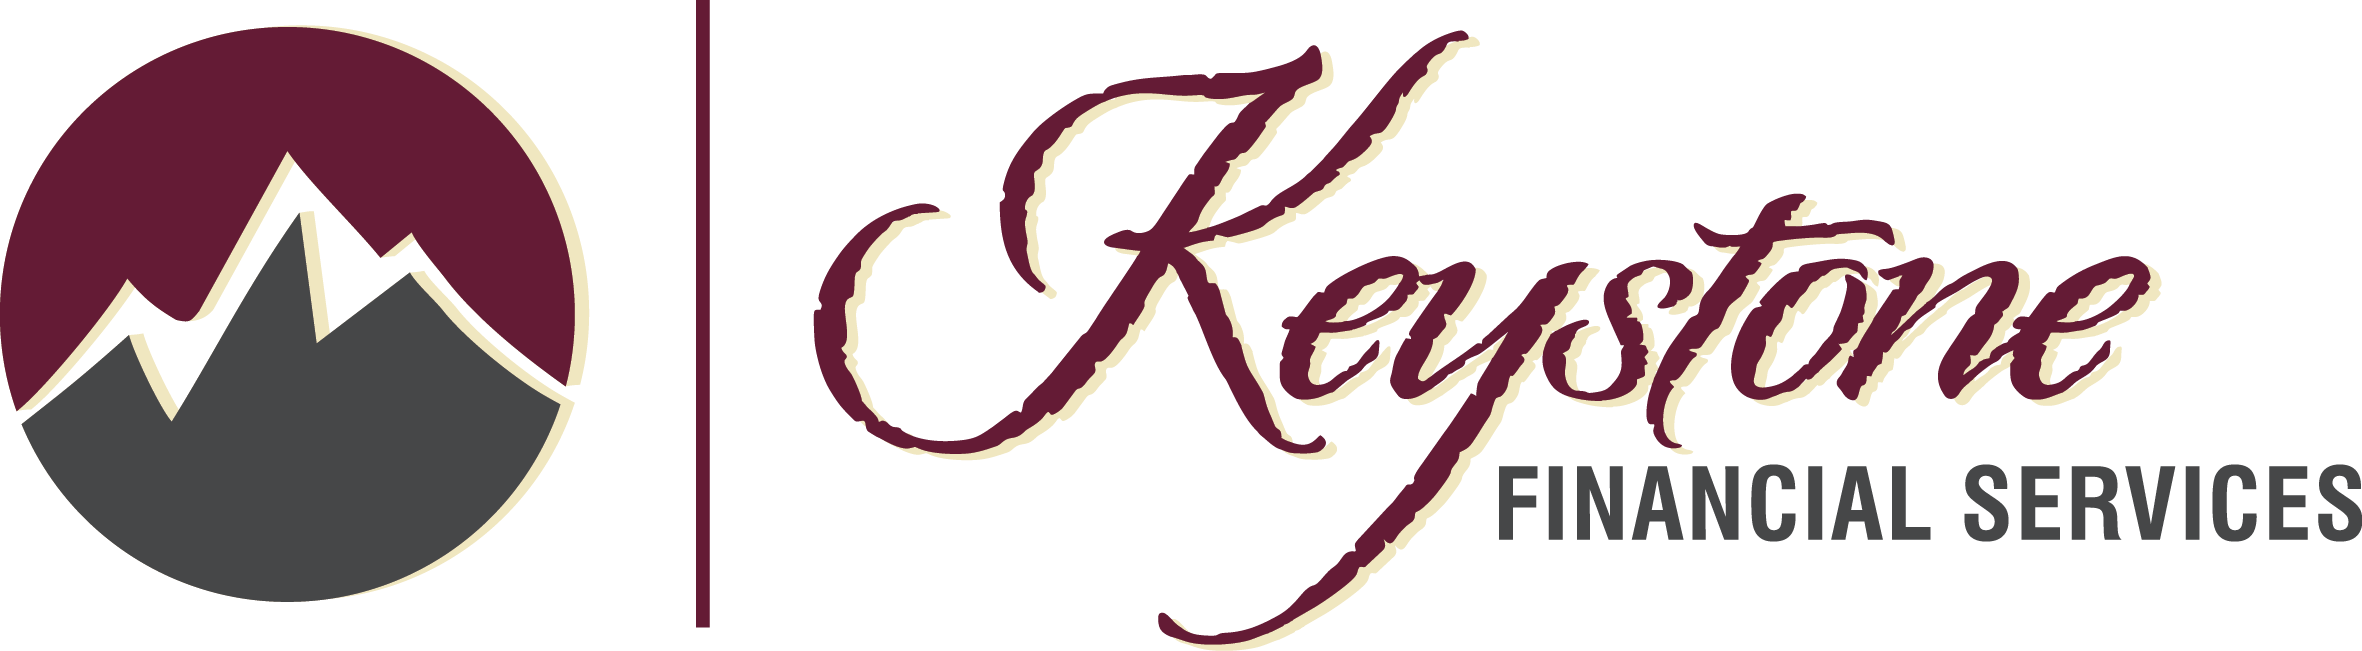 Keystone Financial Services